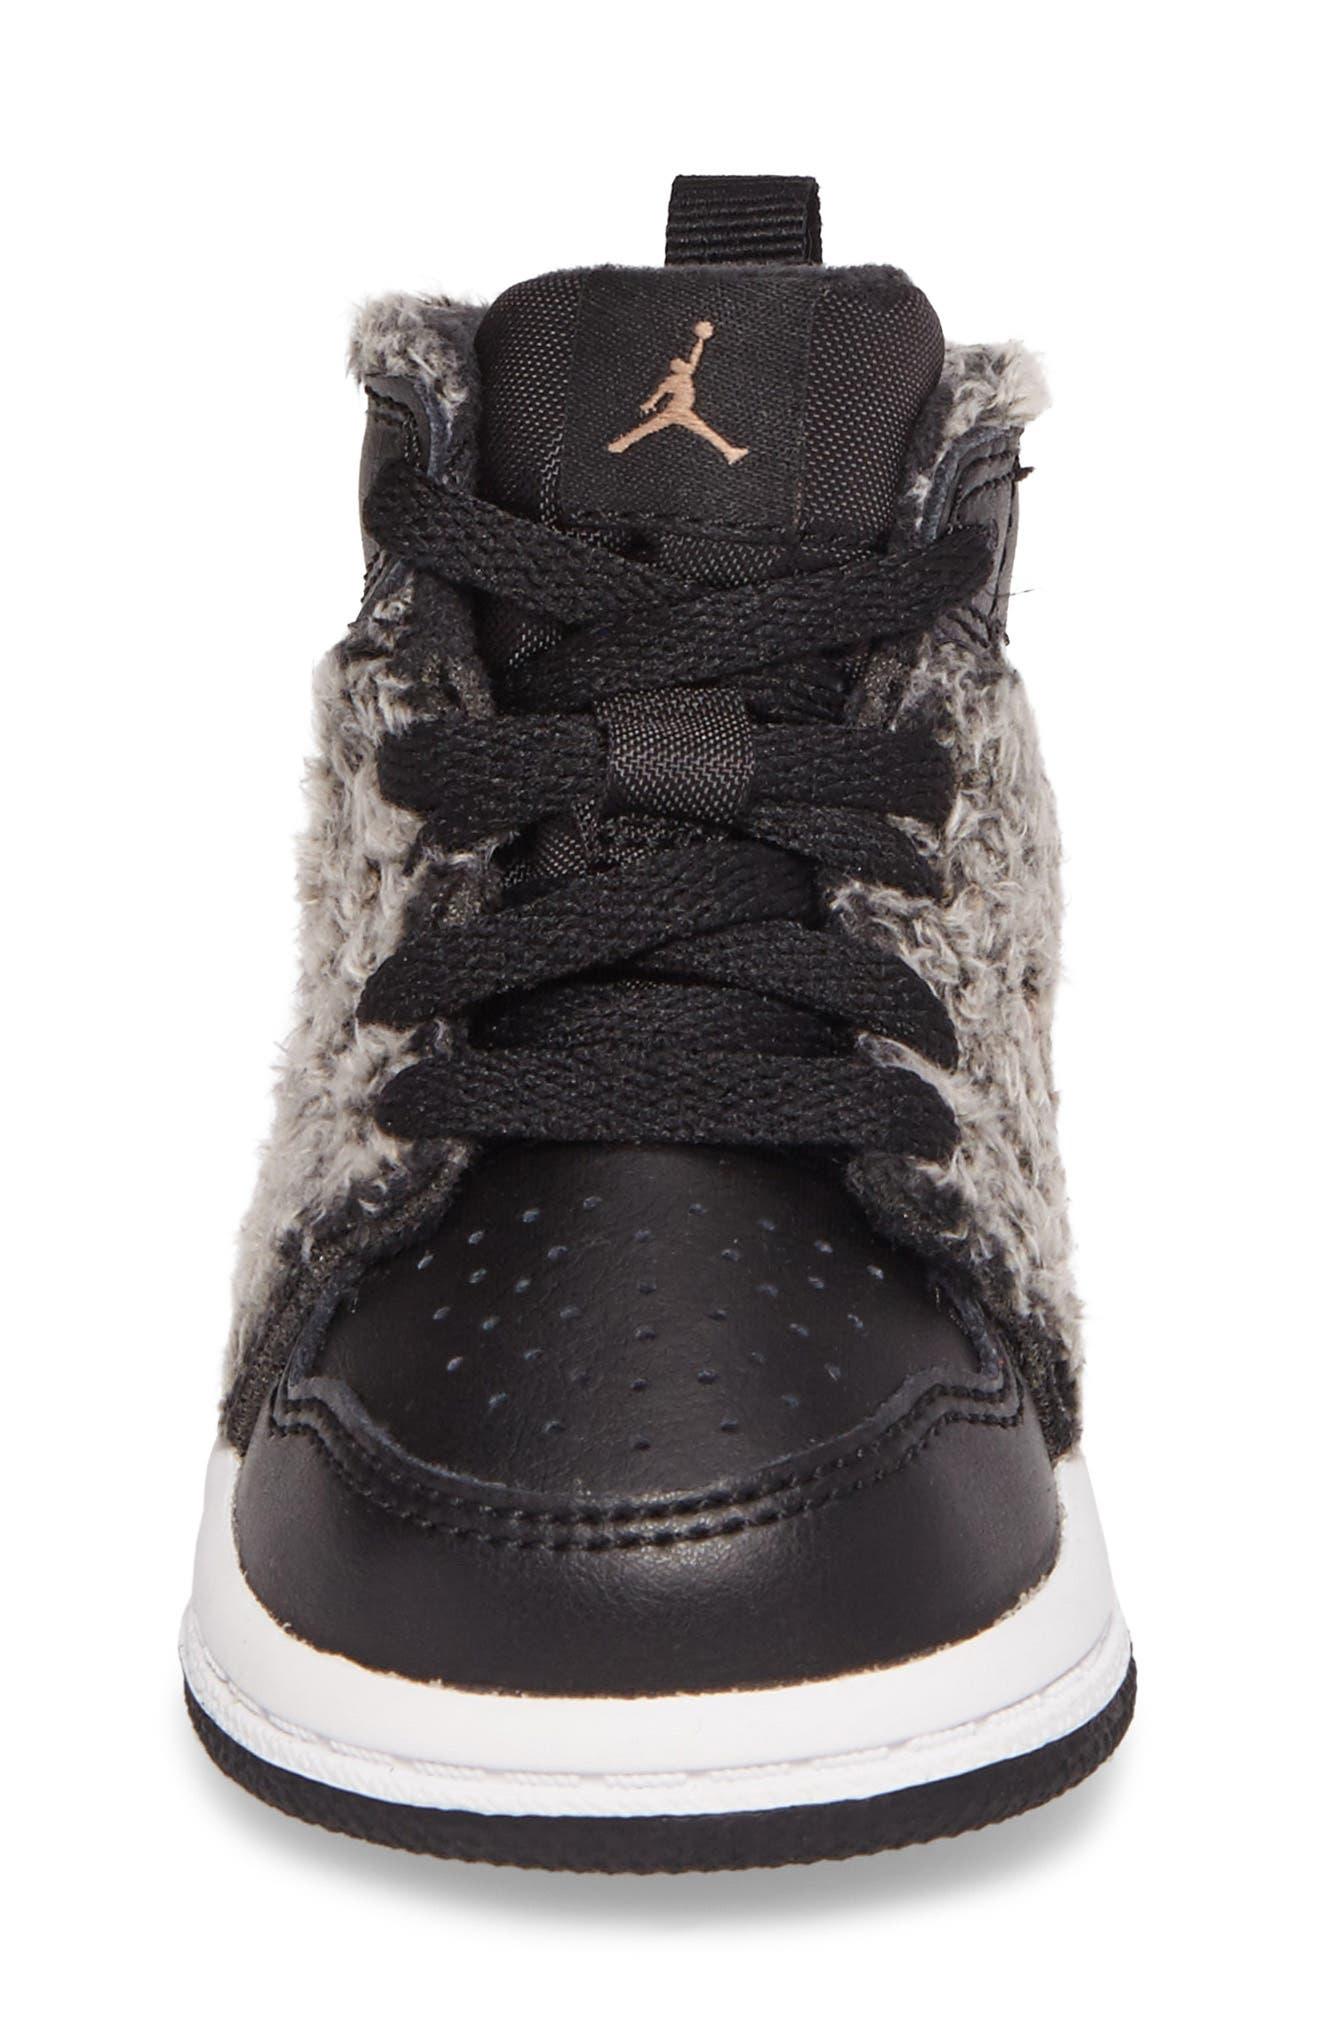 Air Jordan 1 Retro High Top Basketball Shoe,                             Alternate thumbnail 4, color,                             001